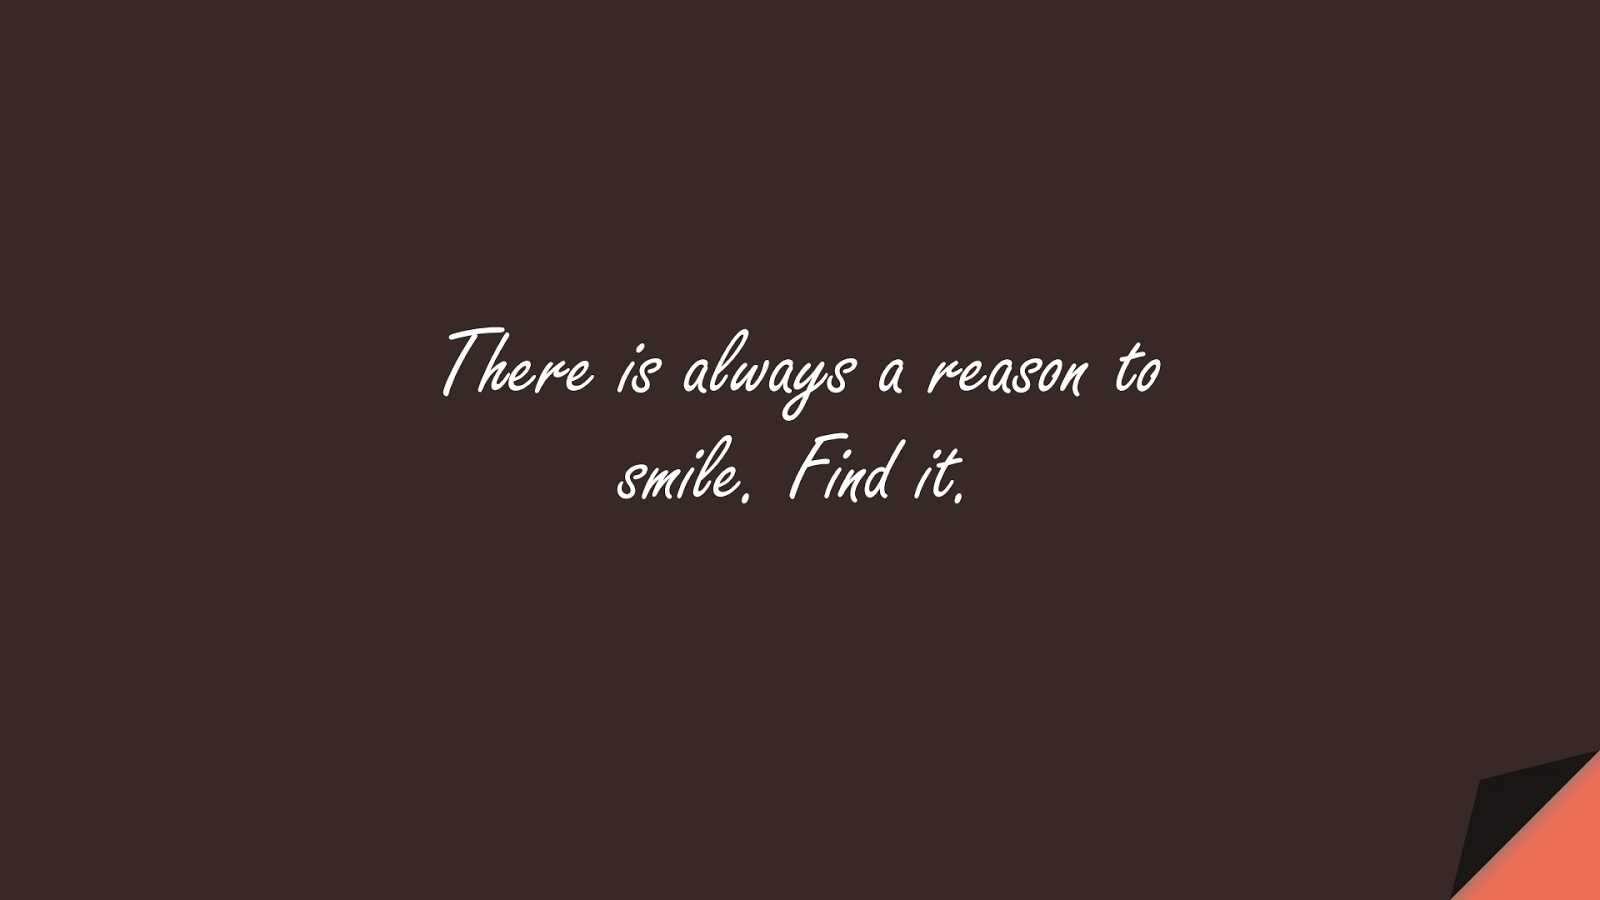 There is always a reason to smile. Find it.FALSE